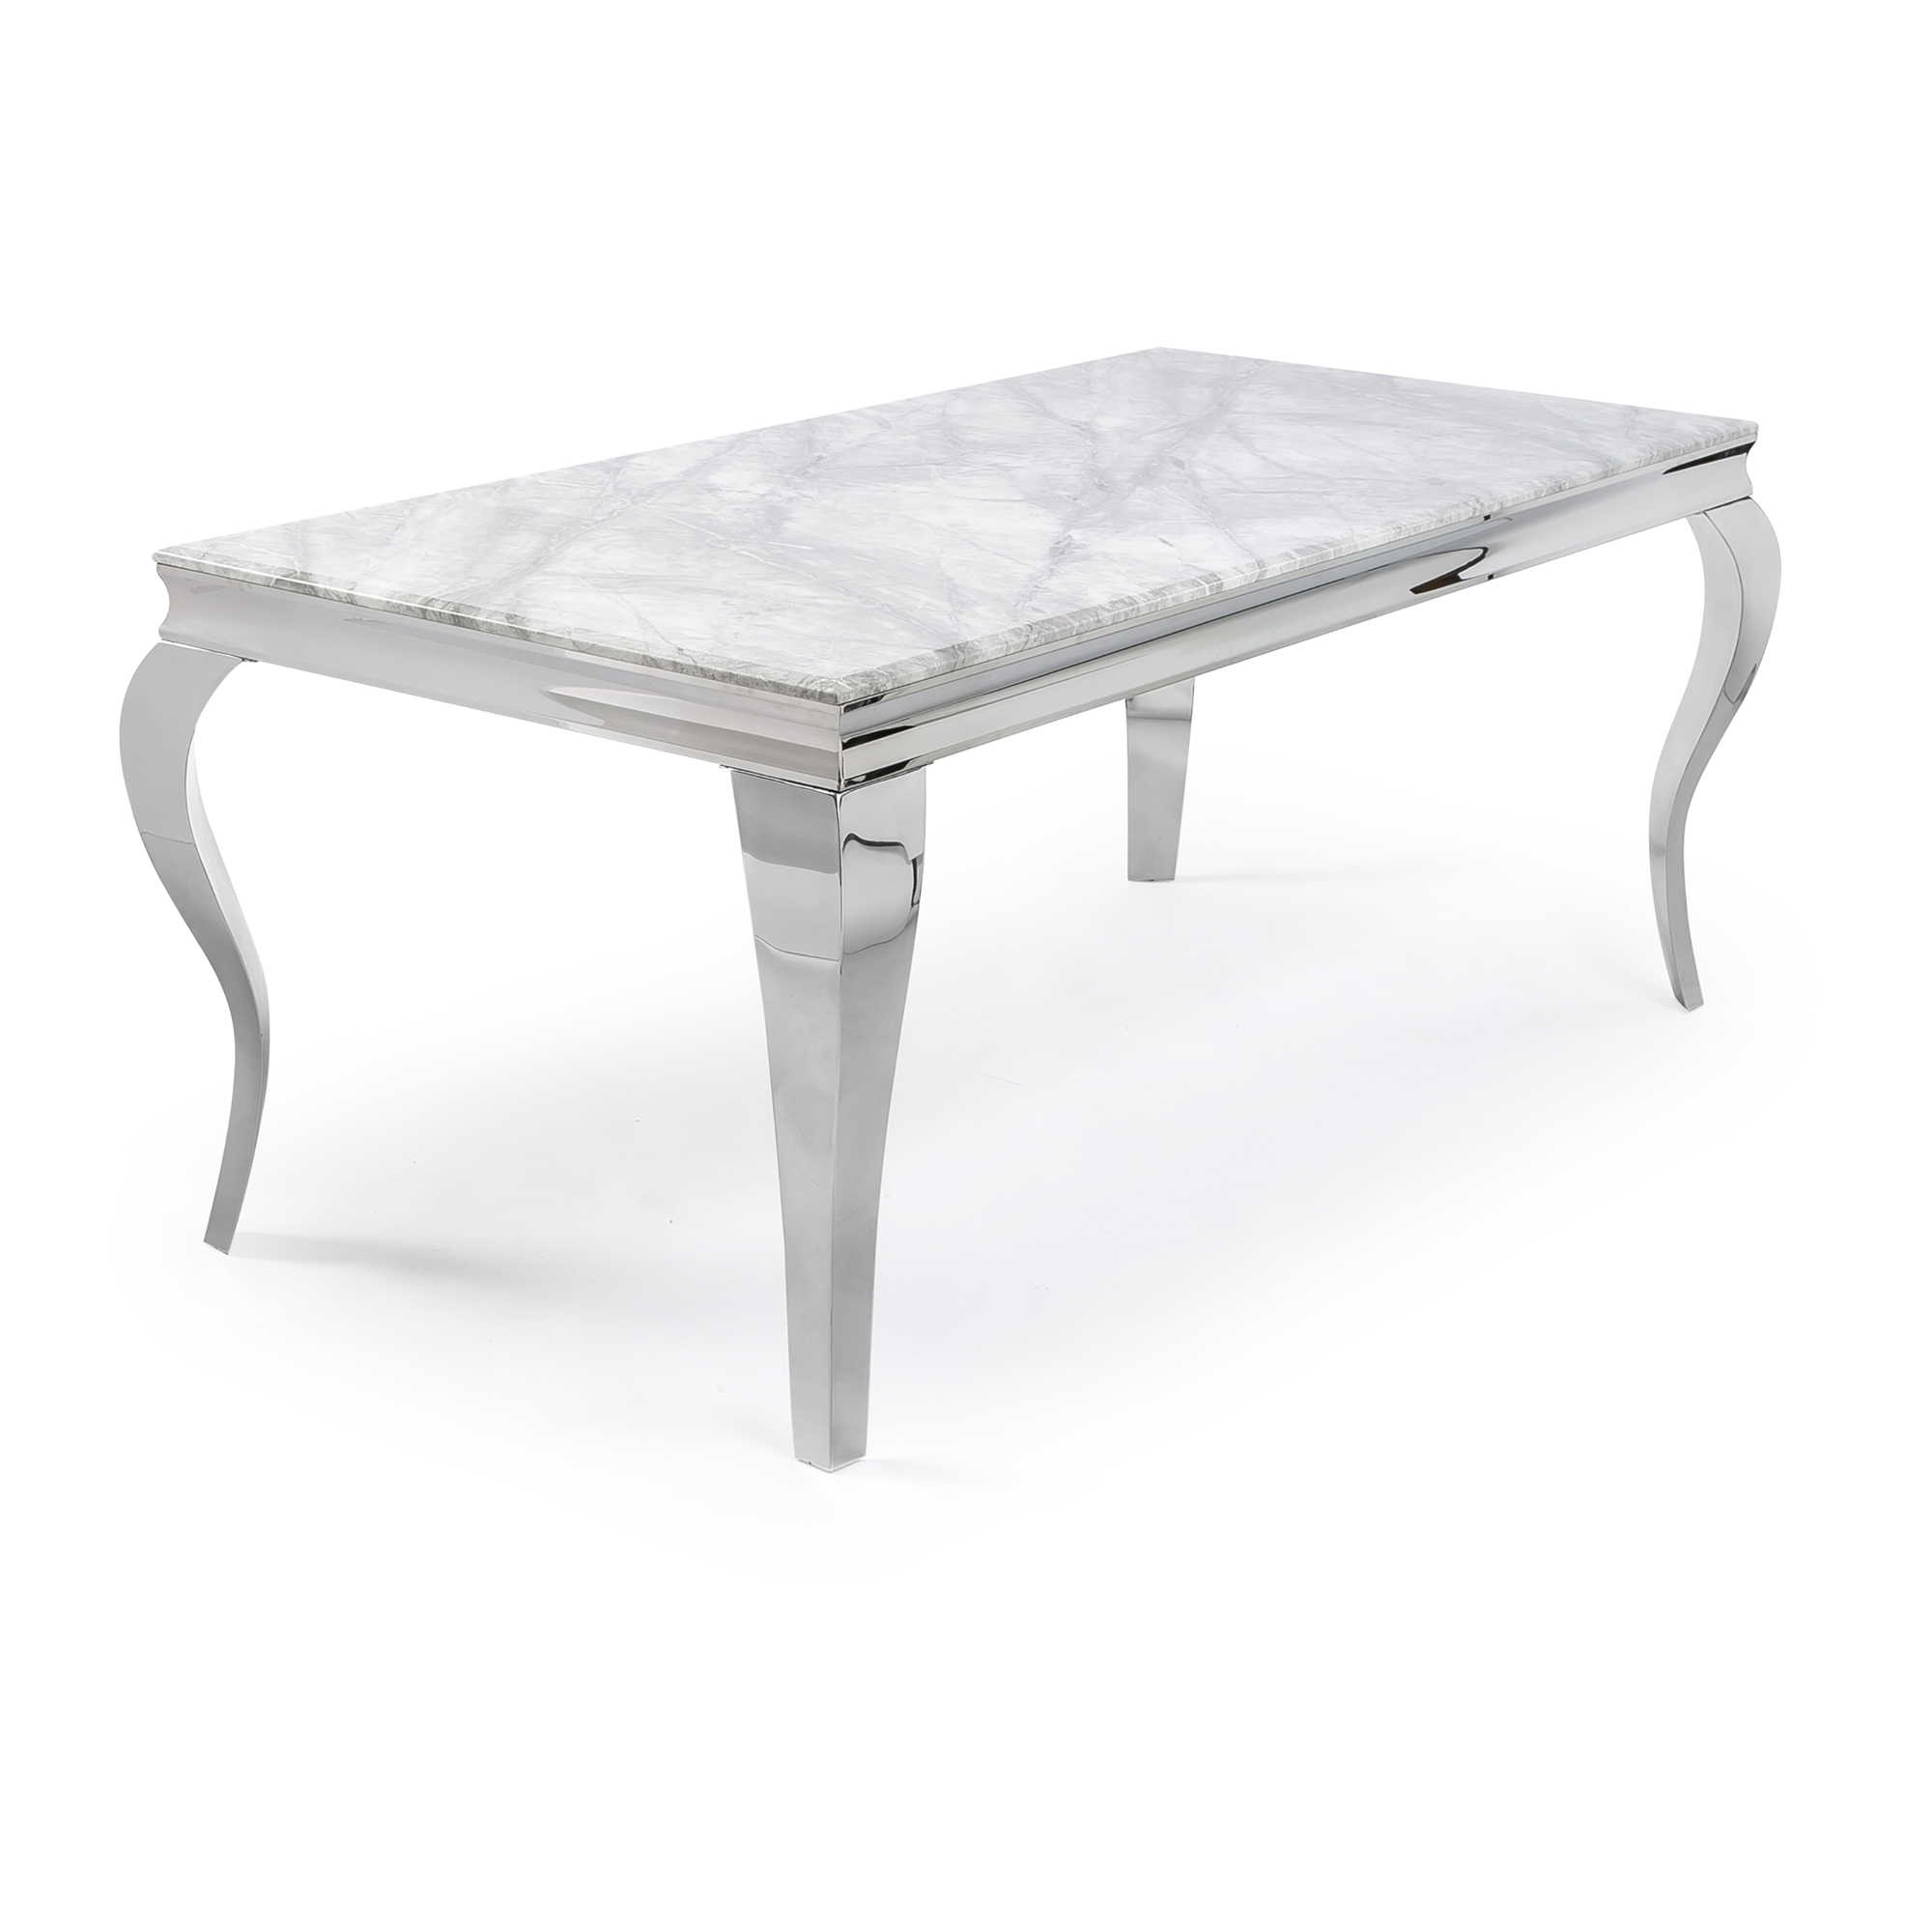 1.6m Louis Polished Steel Dining Grey Marble Table Set with 6 Grey Brushed Velvet Dining Chairs